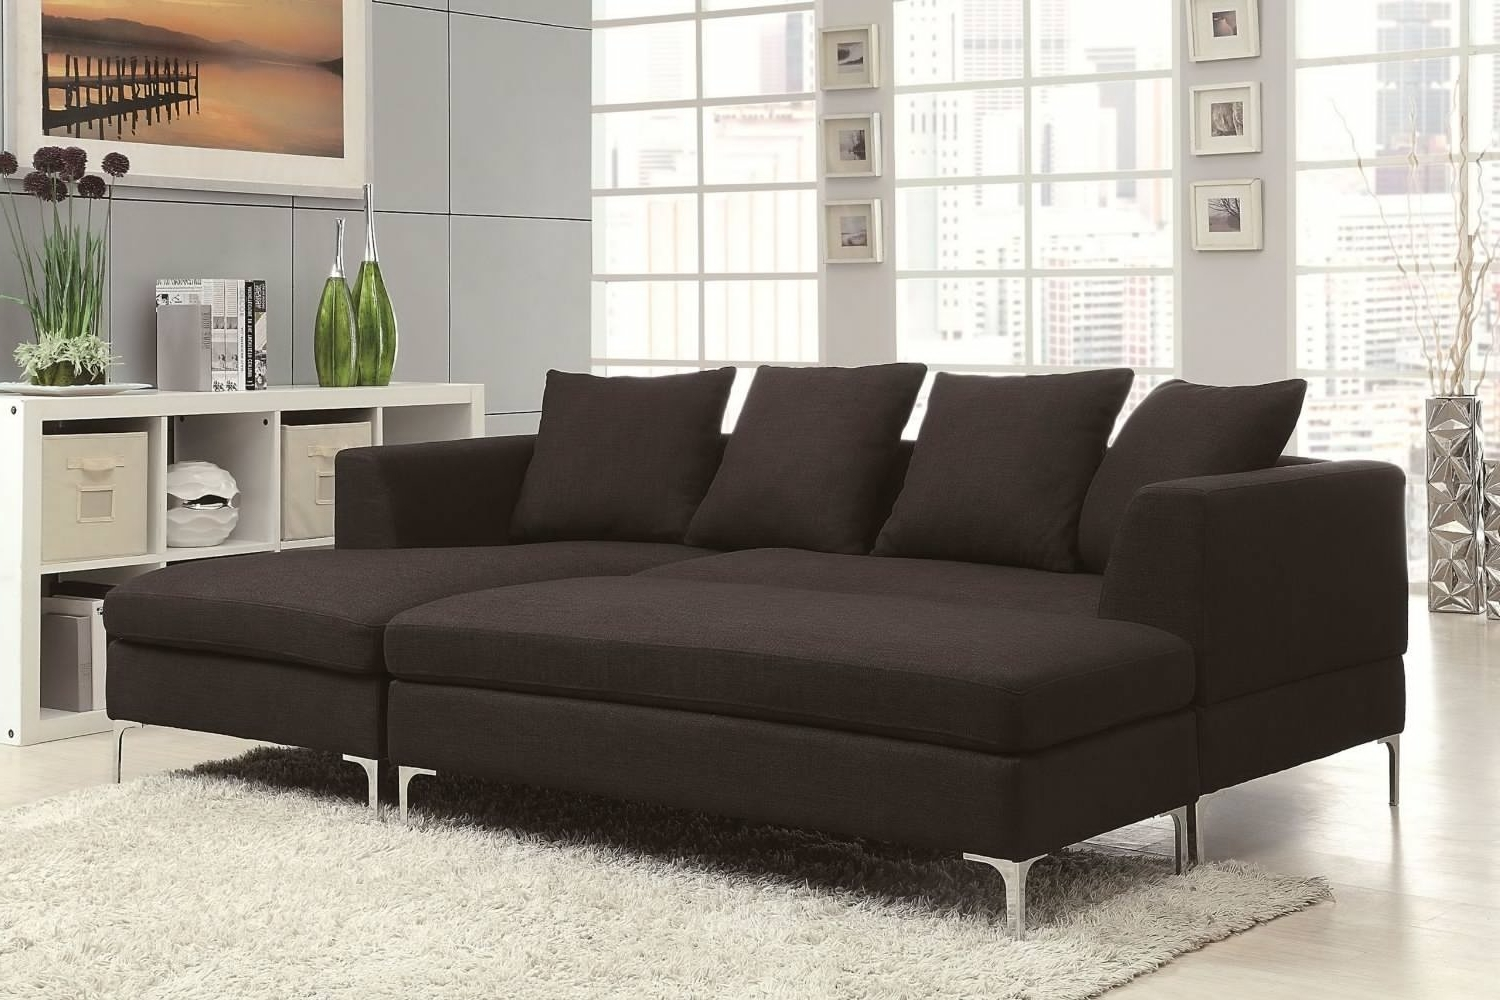 Famous Sectional Sofa Design: Sectional Sofa Chaise Lounge Sleeper Inside Microfiber Sectionals With Chaise (View 7 of 15)